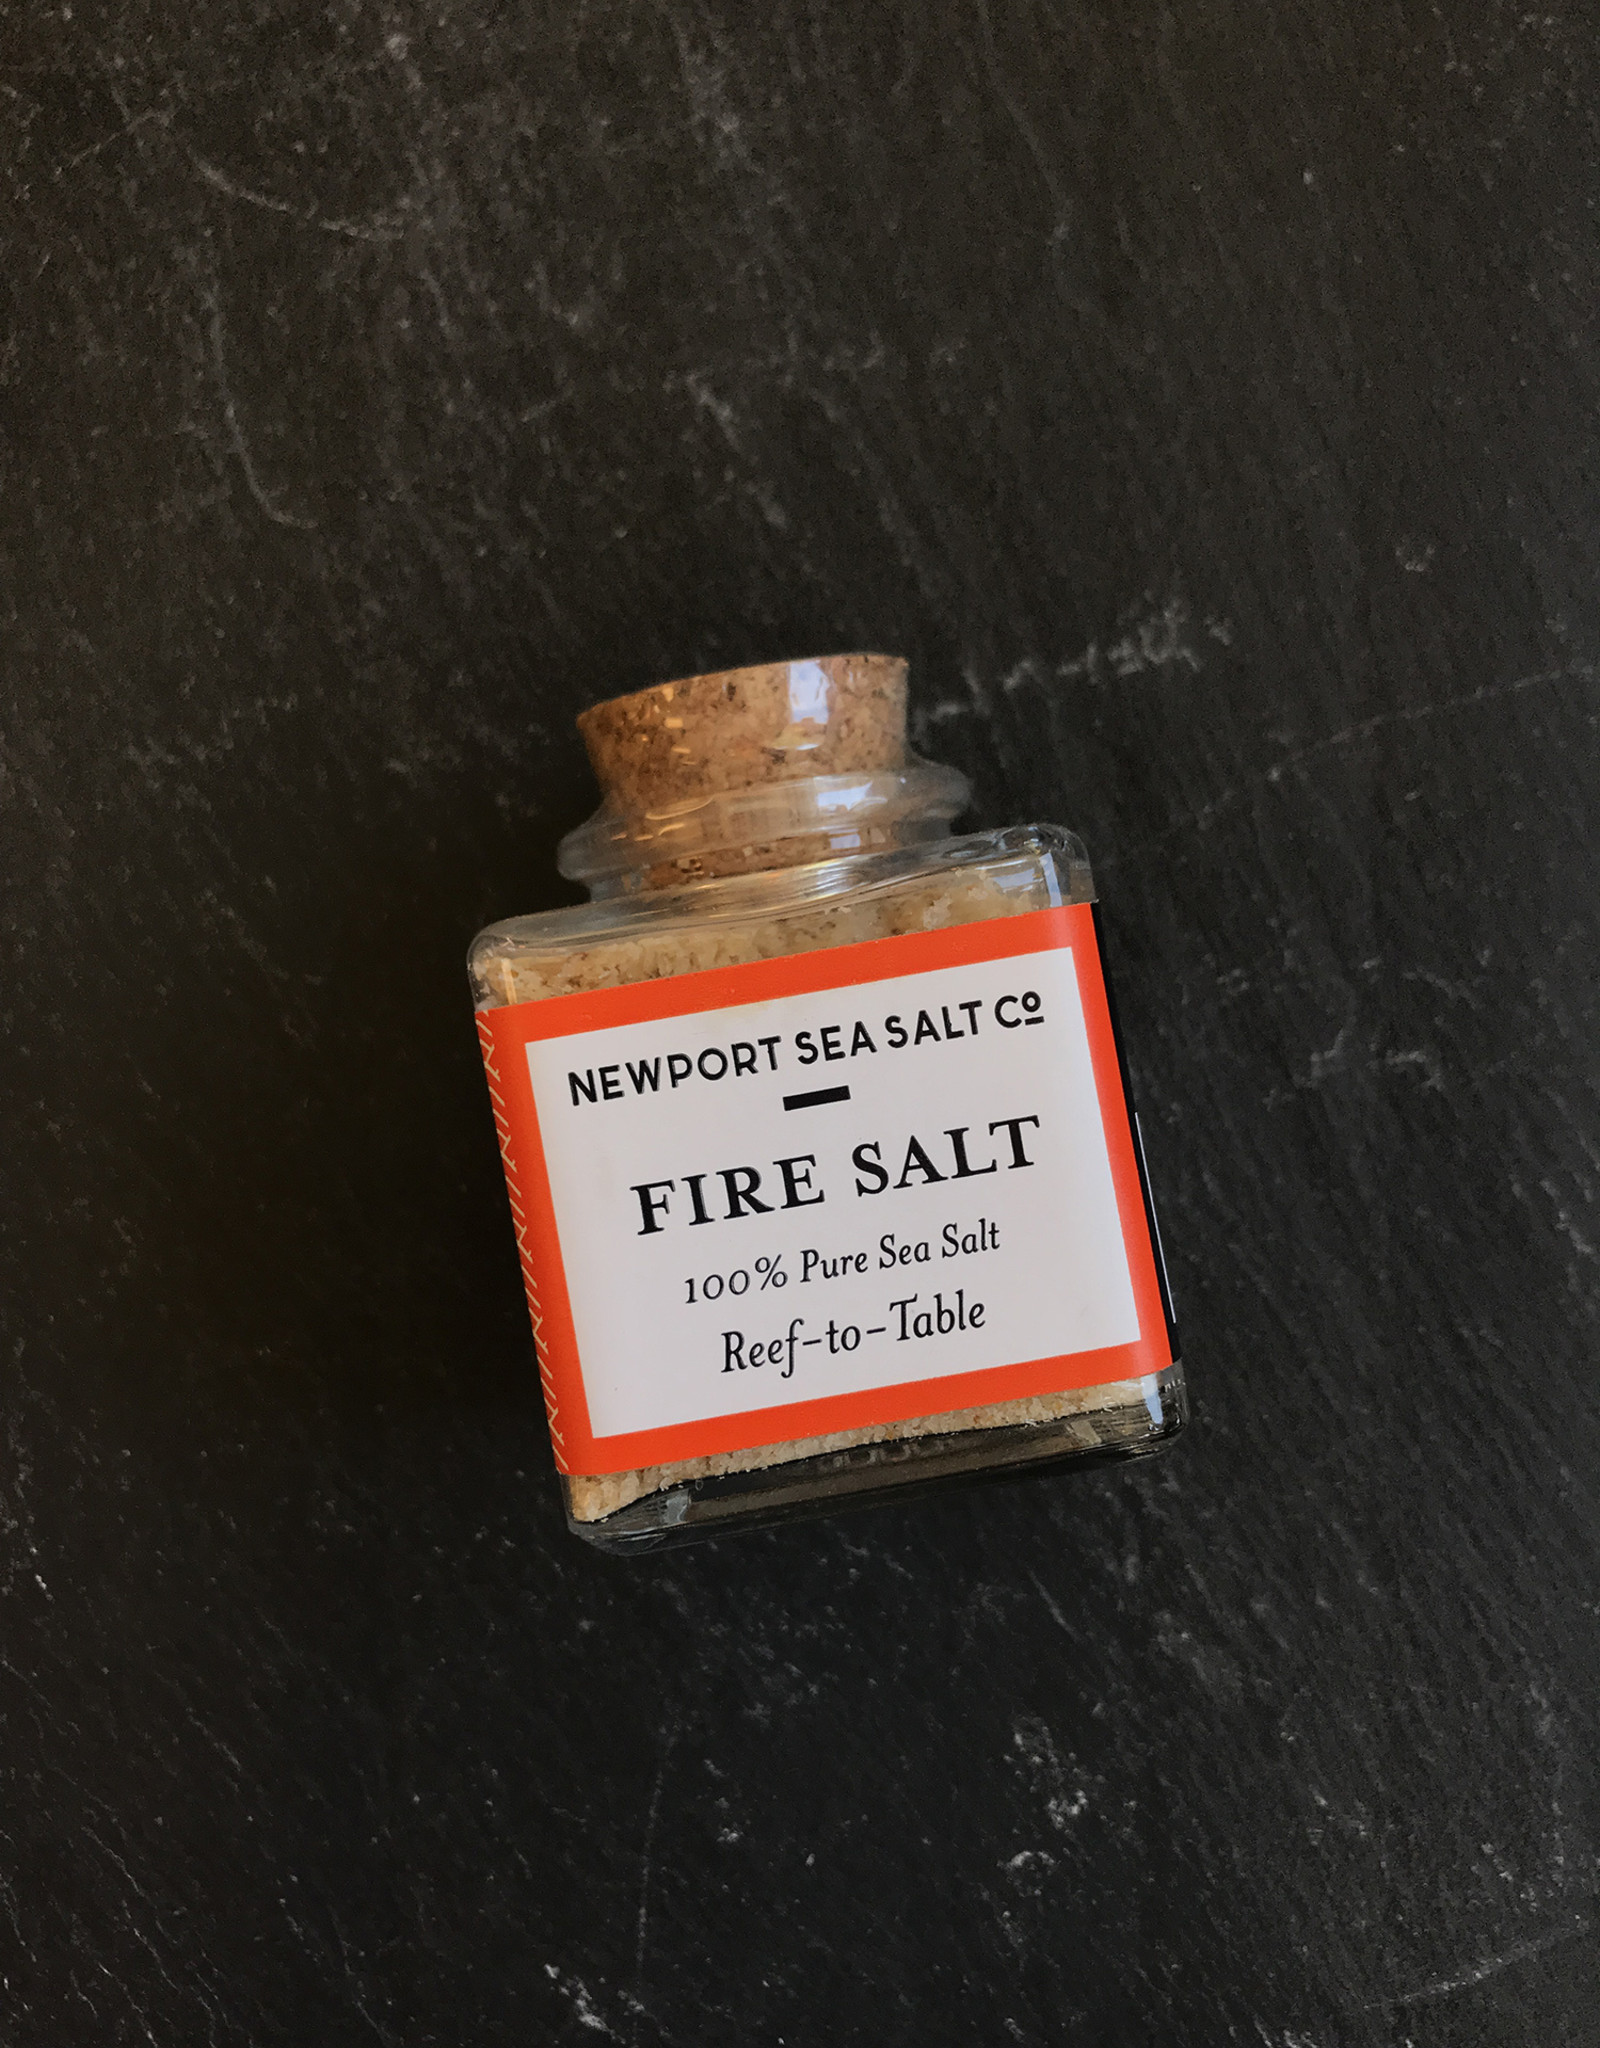 Newport Sea Salt Newport Sea Salt Blends, 2 oz.